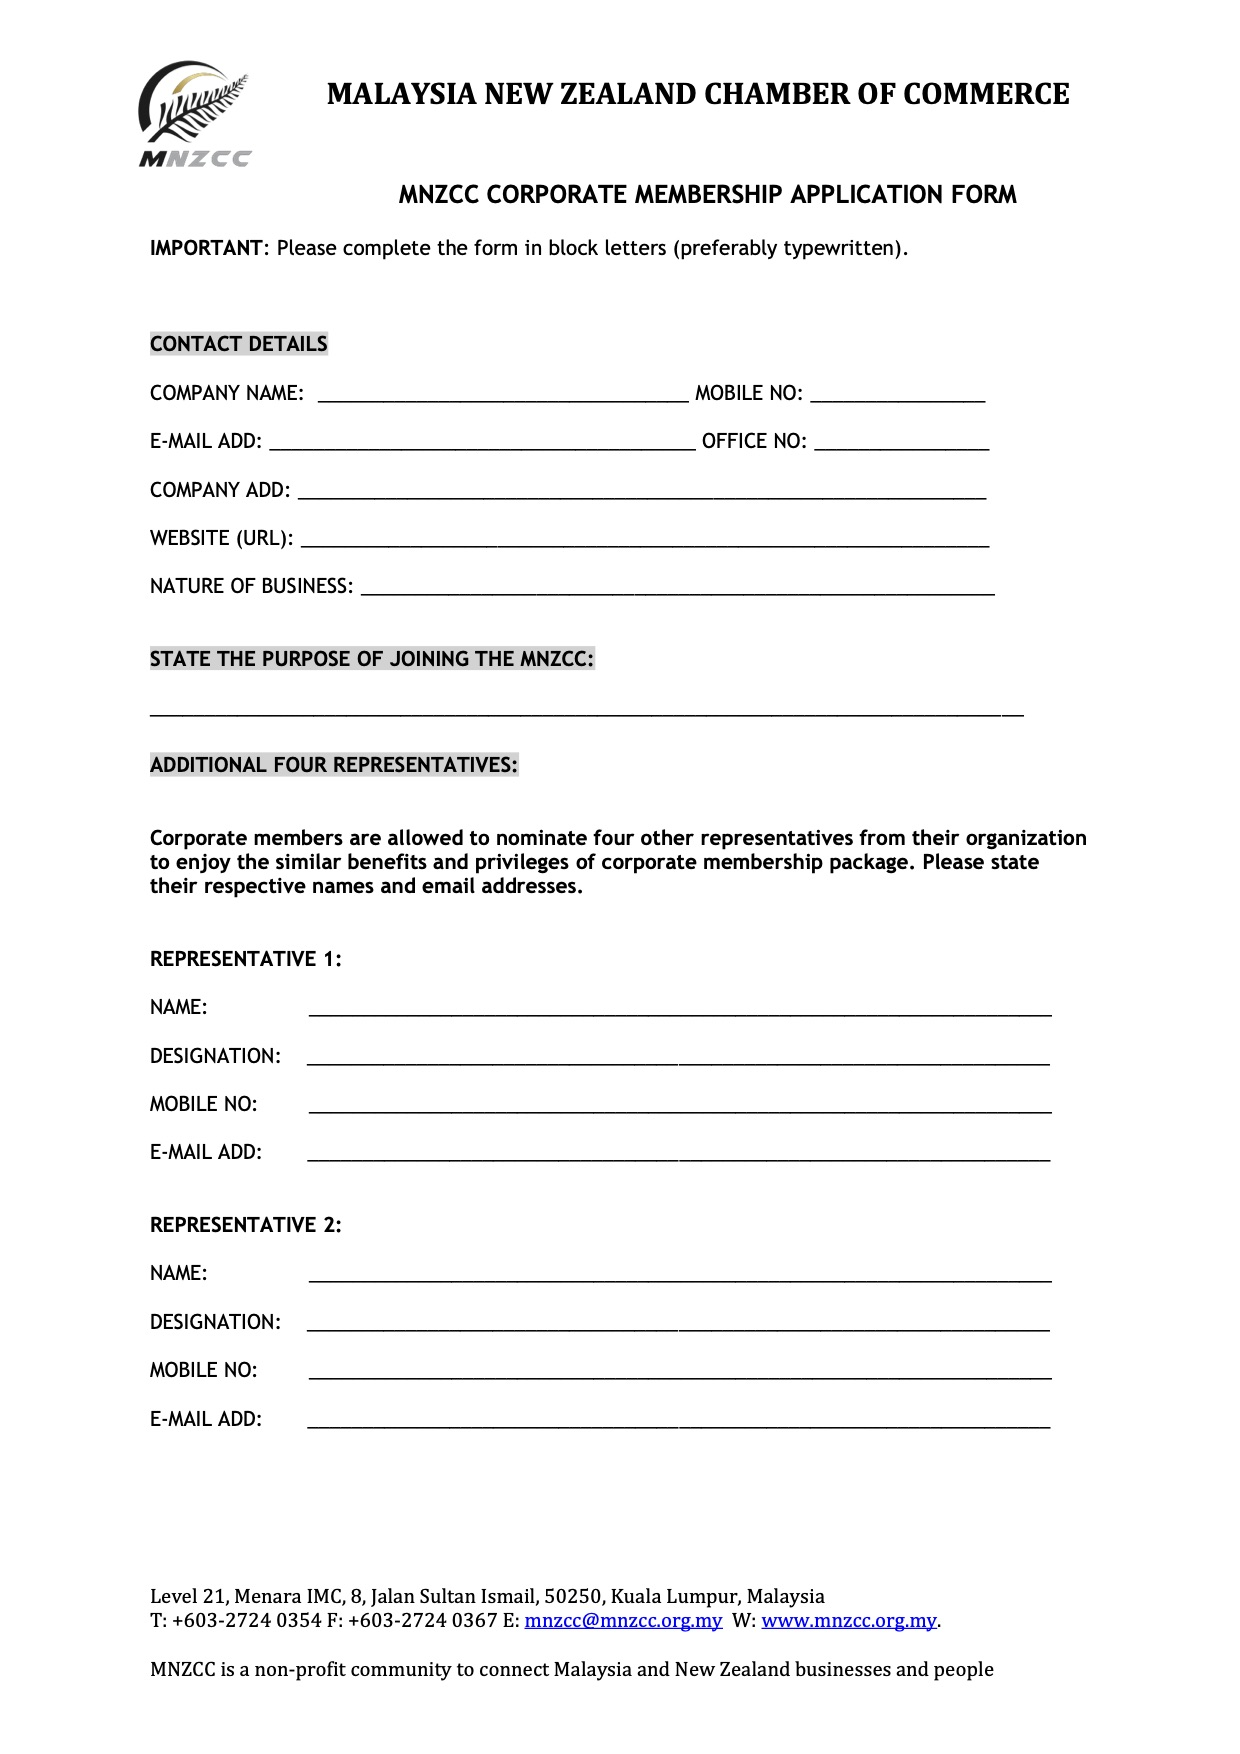 MNZCC CORPORATE MEMBERSHIP APPLICATION FORM 2020